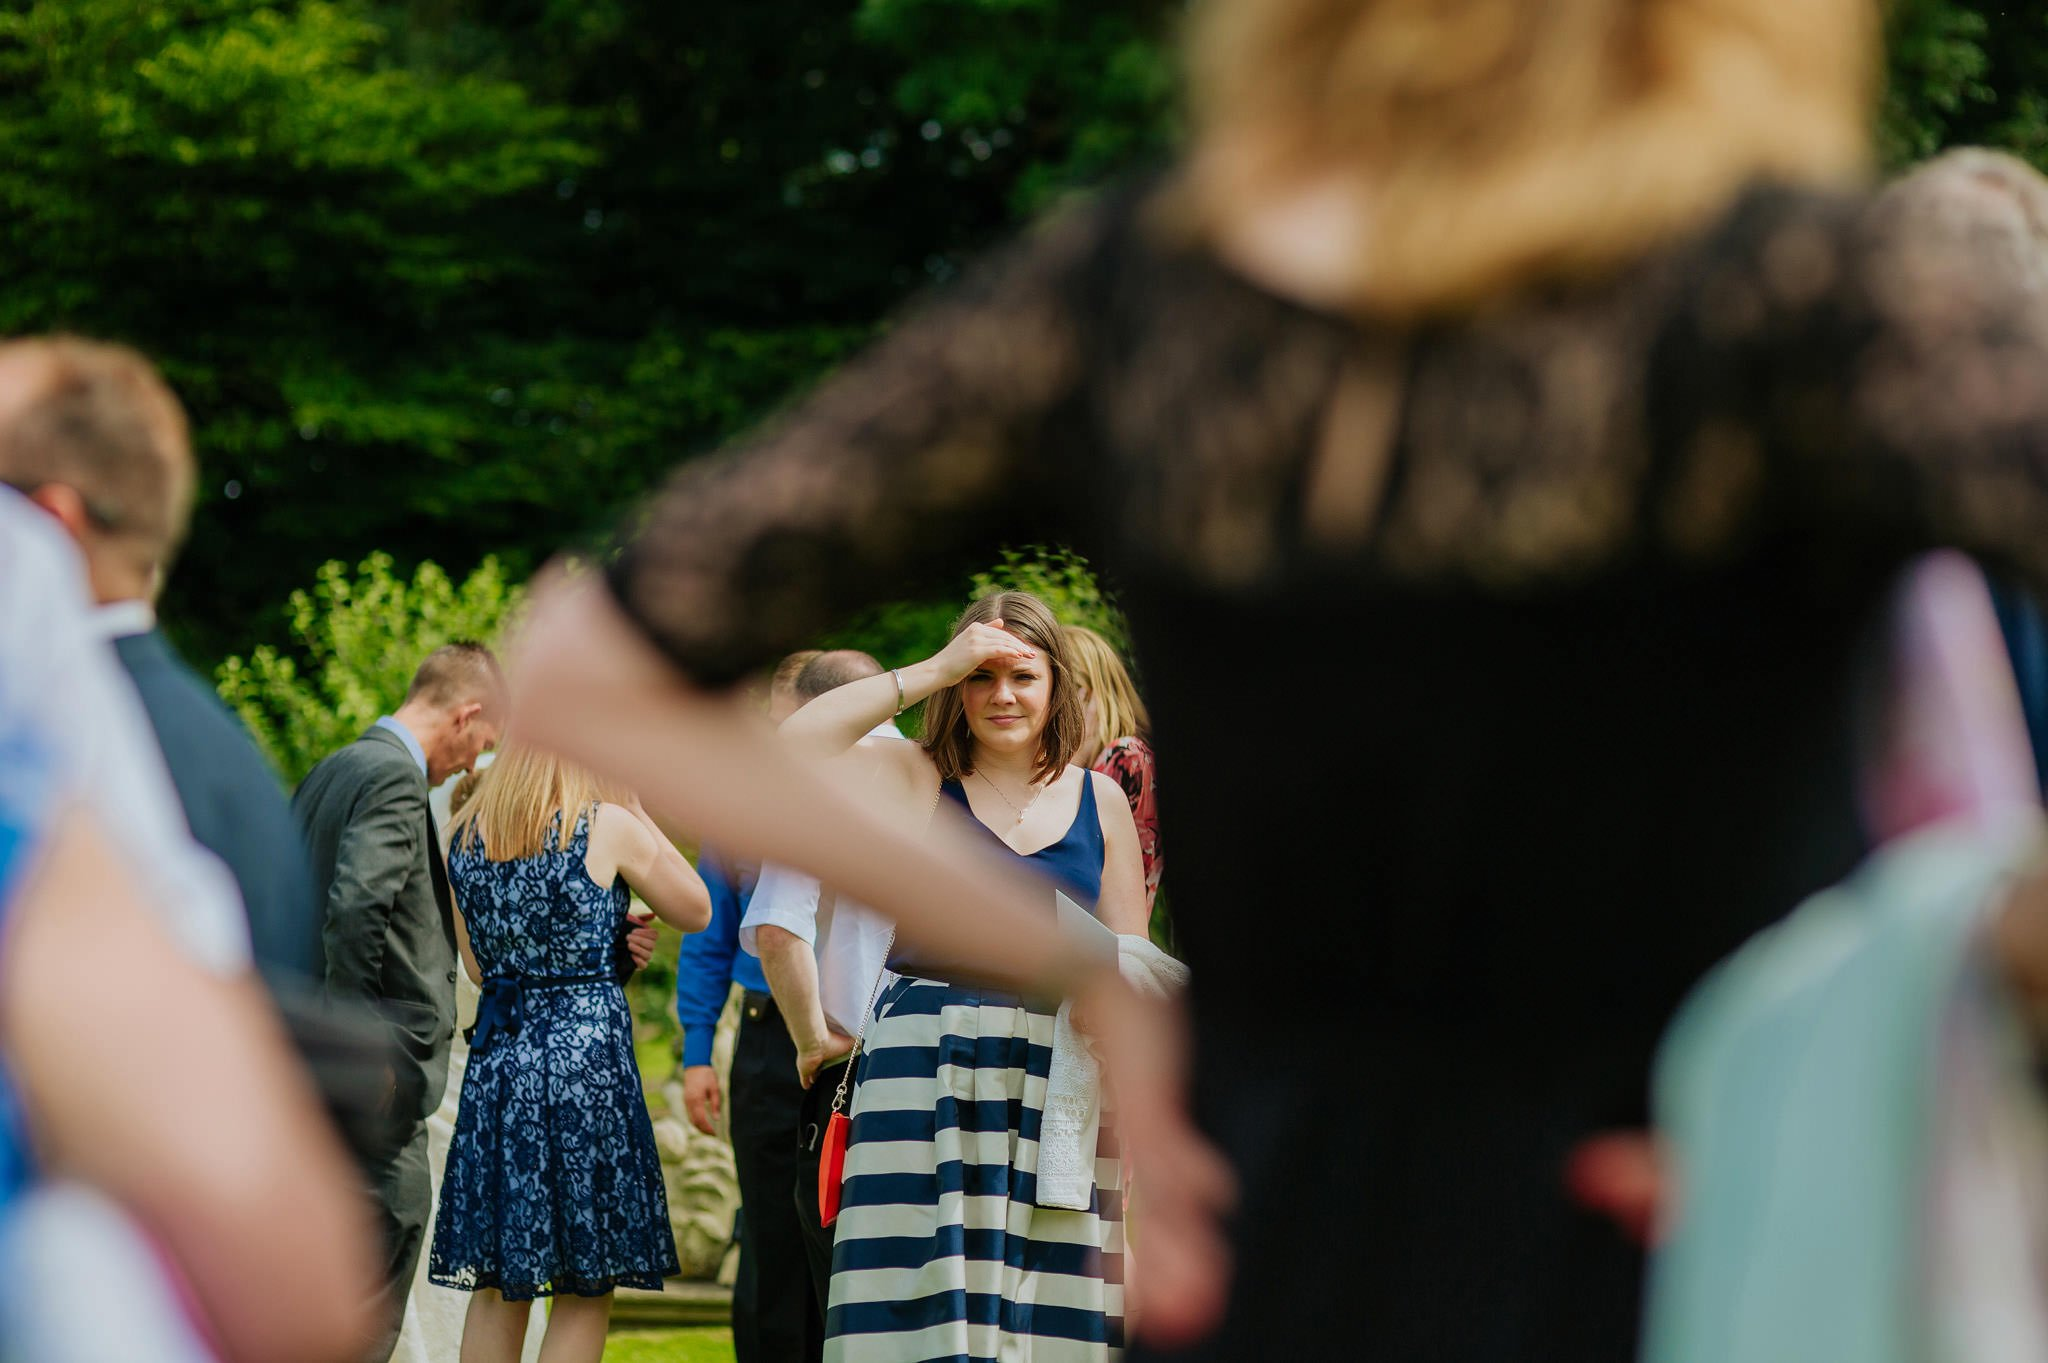 Wedding photography at Homme House in Herefordshire, West Midlands 46